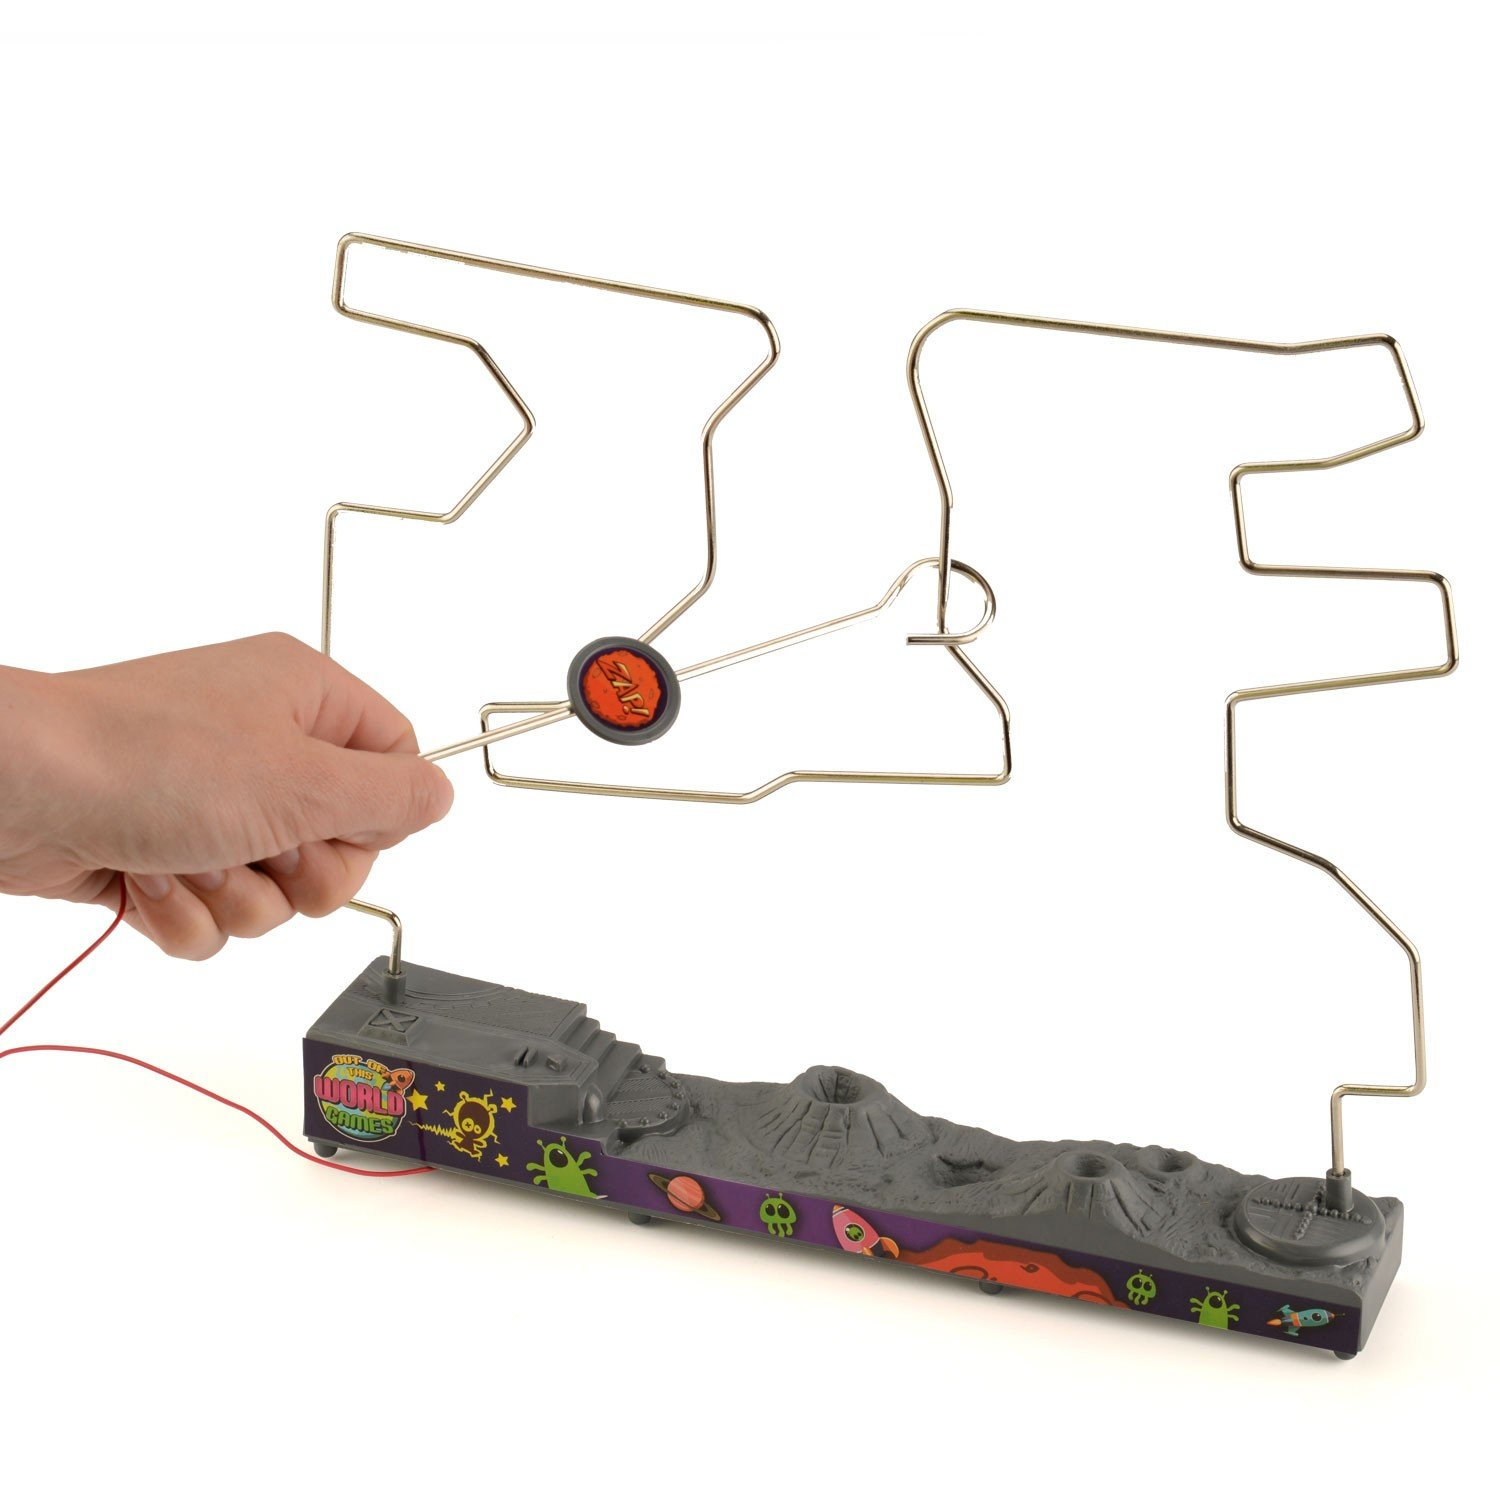 Childrens Beat the Buzzer Hand Co-ordination Game by Grafix Kids Fun Factory 16-6614